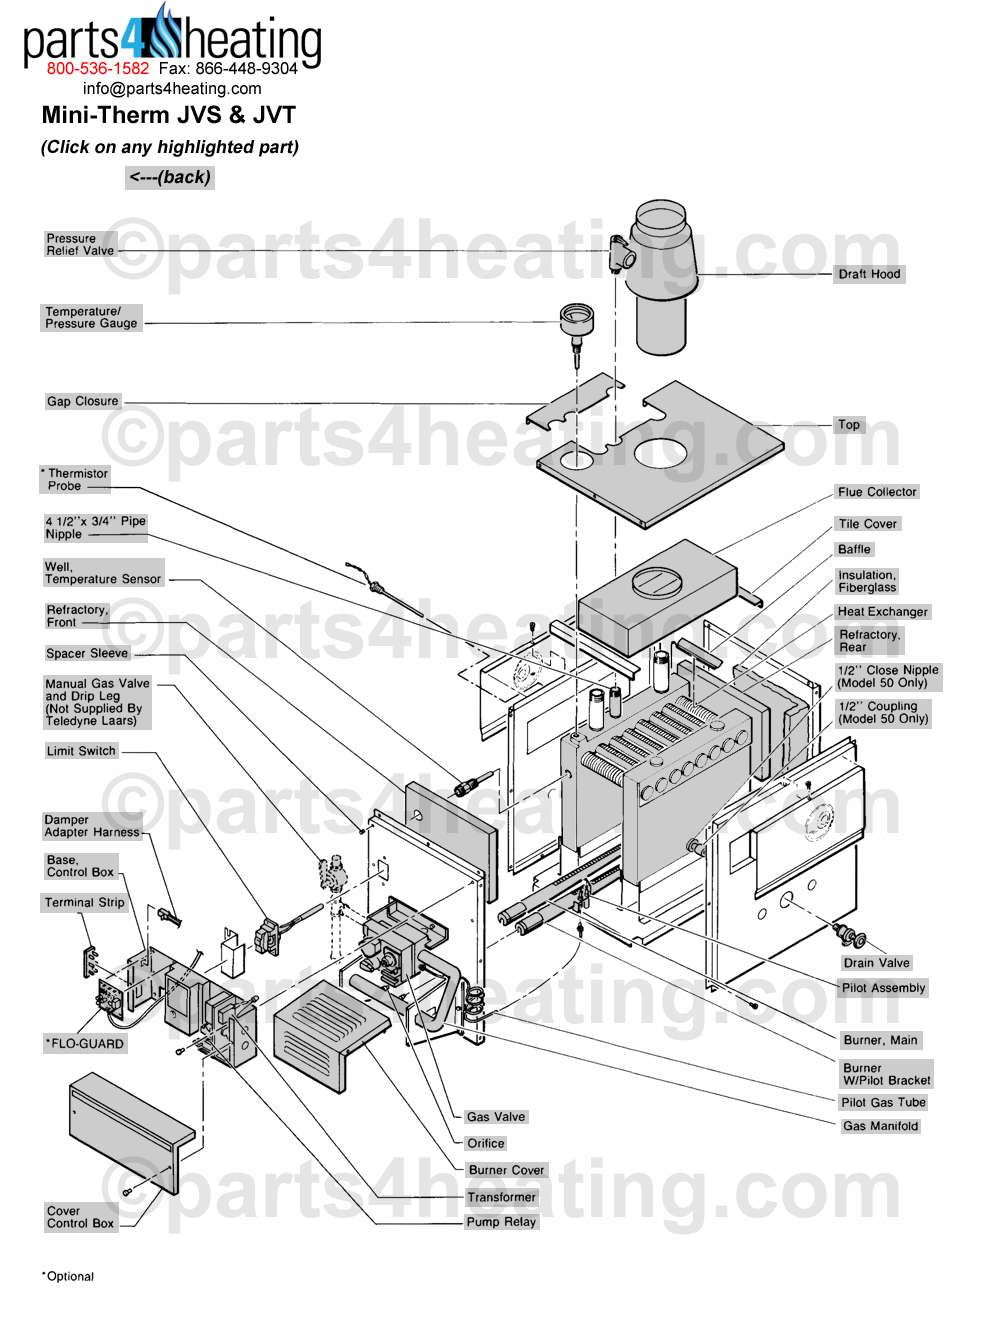 Jvs Jvt Heatmaster Outdoor Furnace Wiring Diagram Clickable Parts